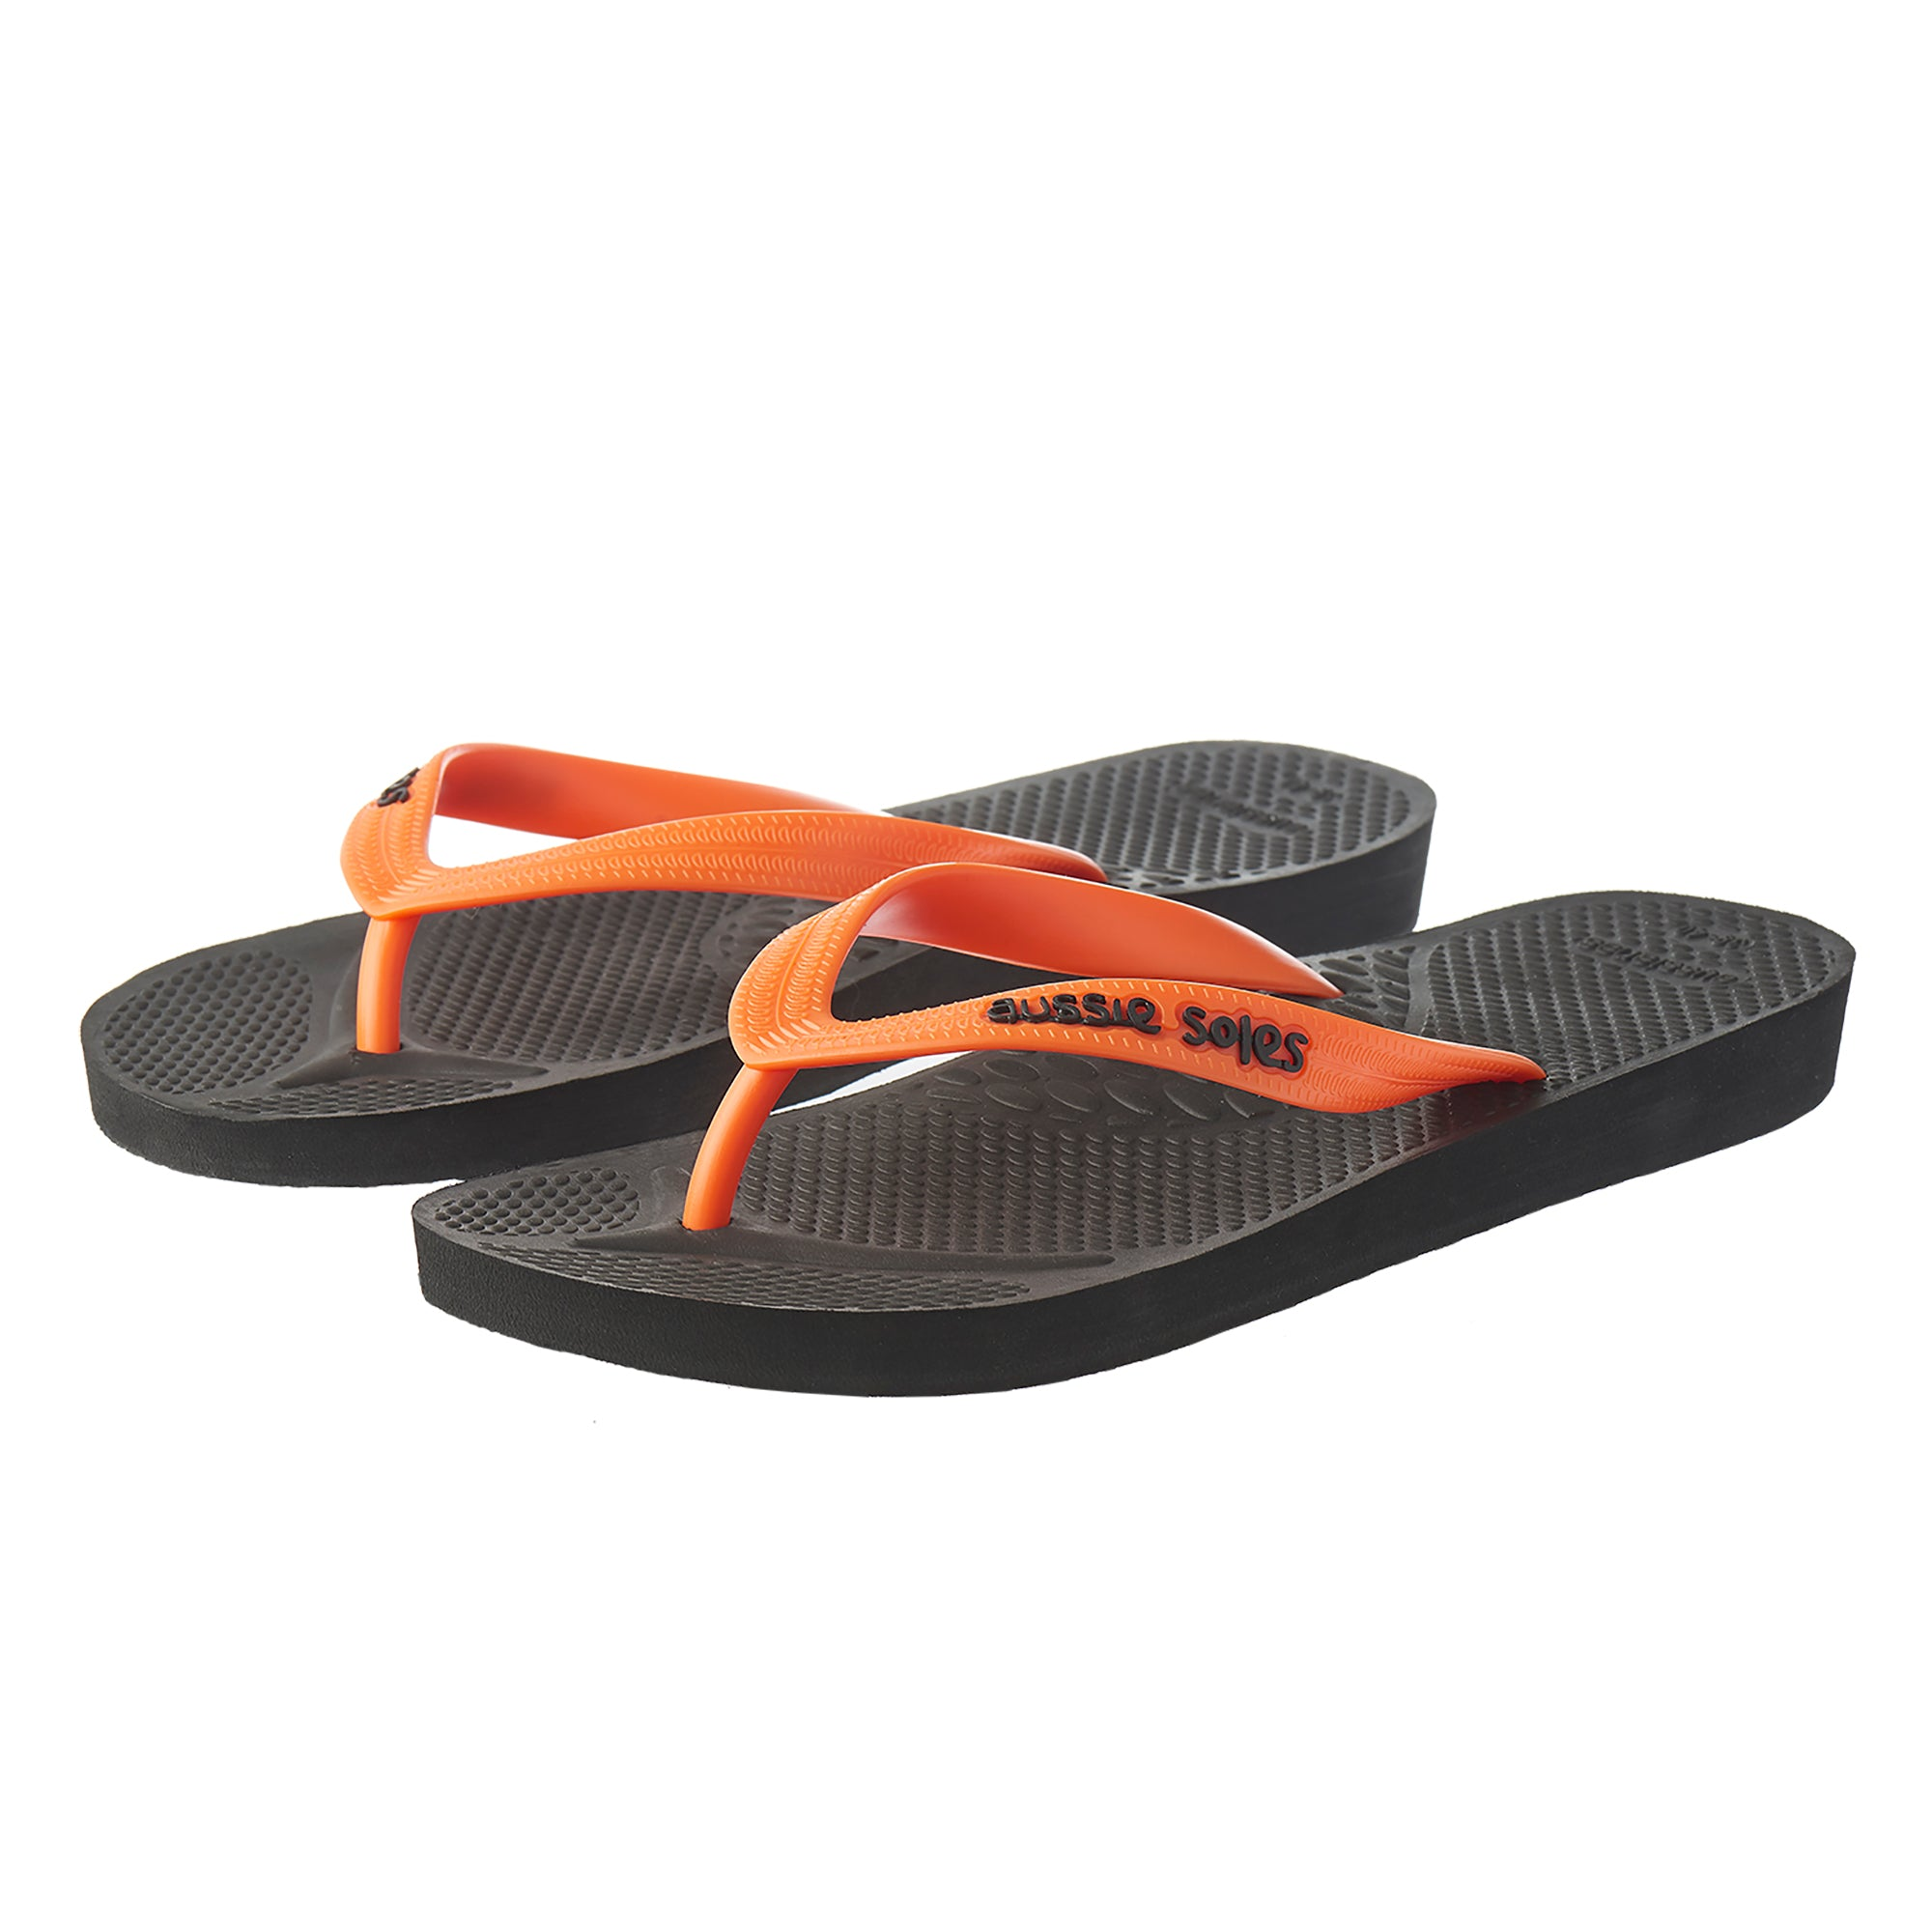 Aussie soles, Aussiana, arch support flip flops, Flip flops for men, Flip flops for women, arch support sandals, orthotic shoes,